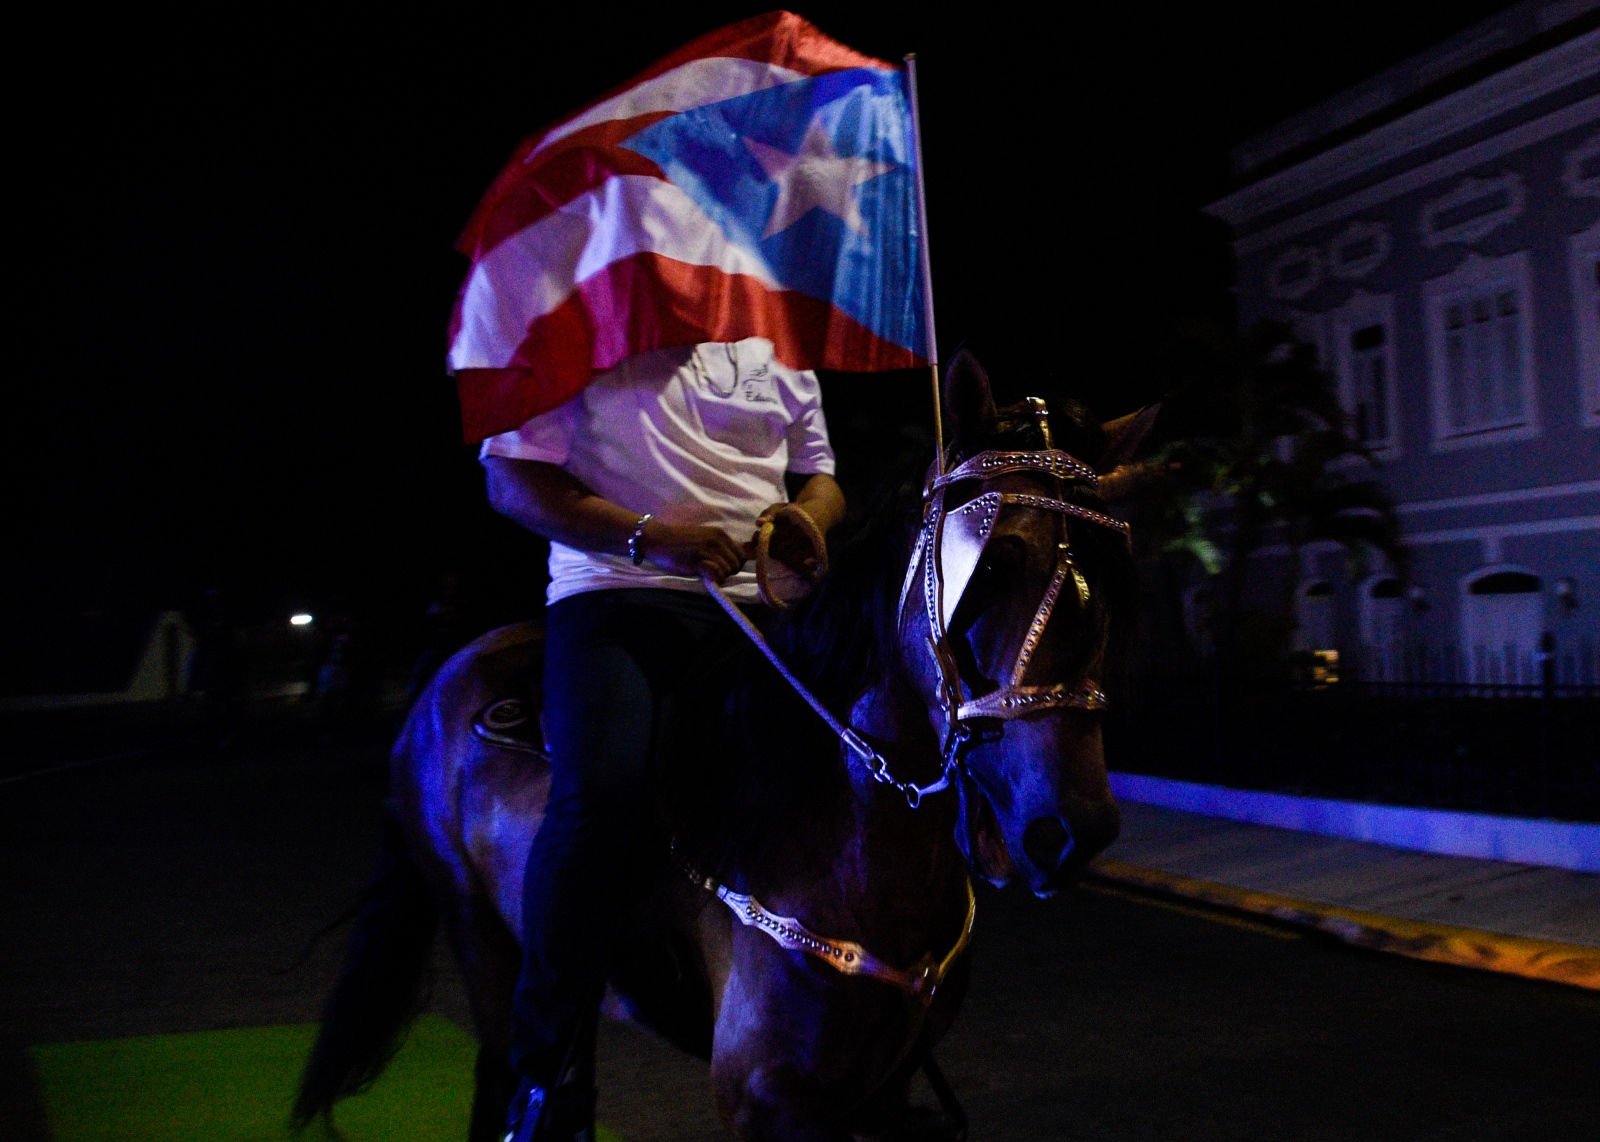 Demonstrators on horseback wave Puerto Rican flags during the protests calling for the resignation of Governor of Puerto Rico, Ricardo Rosselló. Shot while on assignment for Reuters on July 16, 2019.